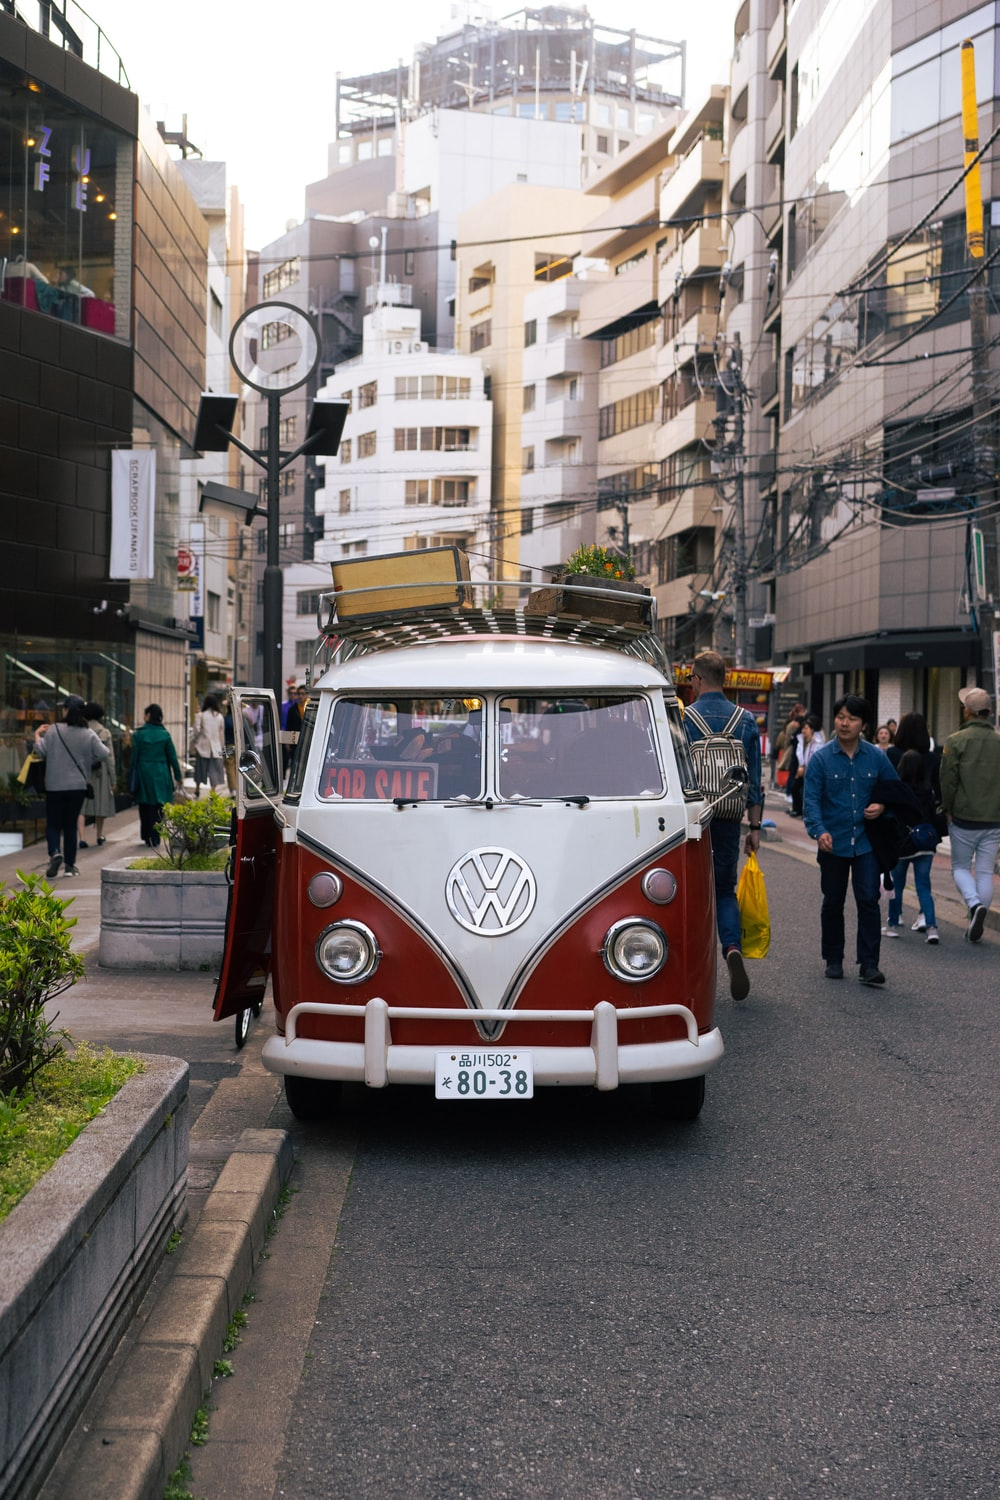 red and white volkswagen t-2 van on road during daytime